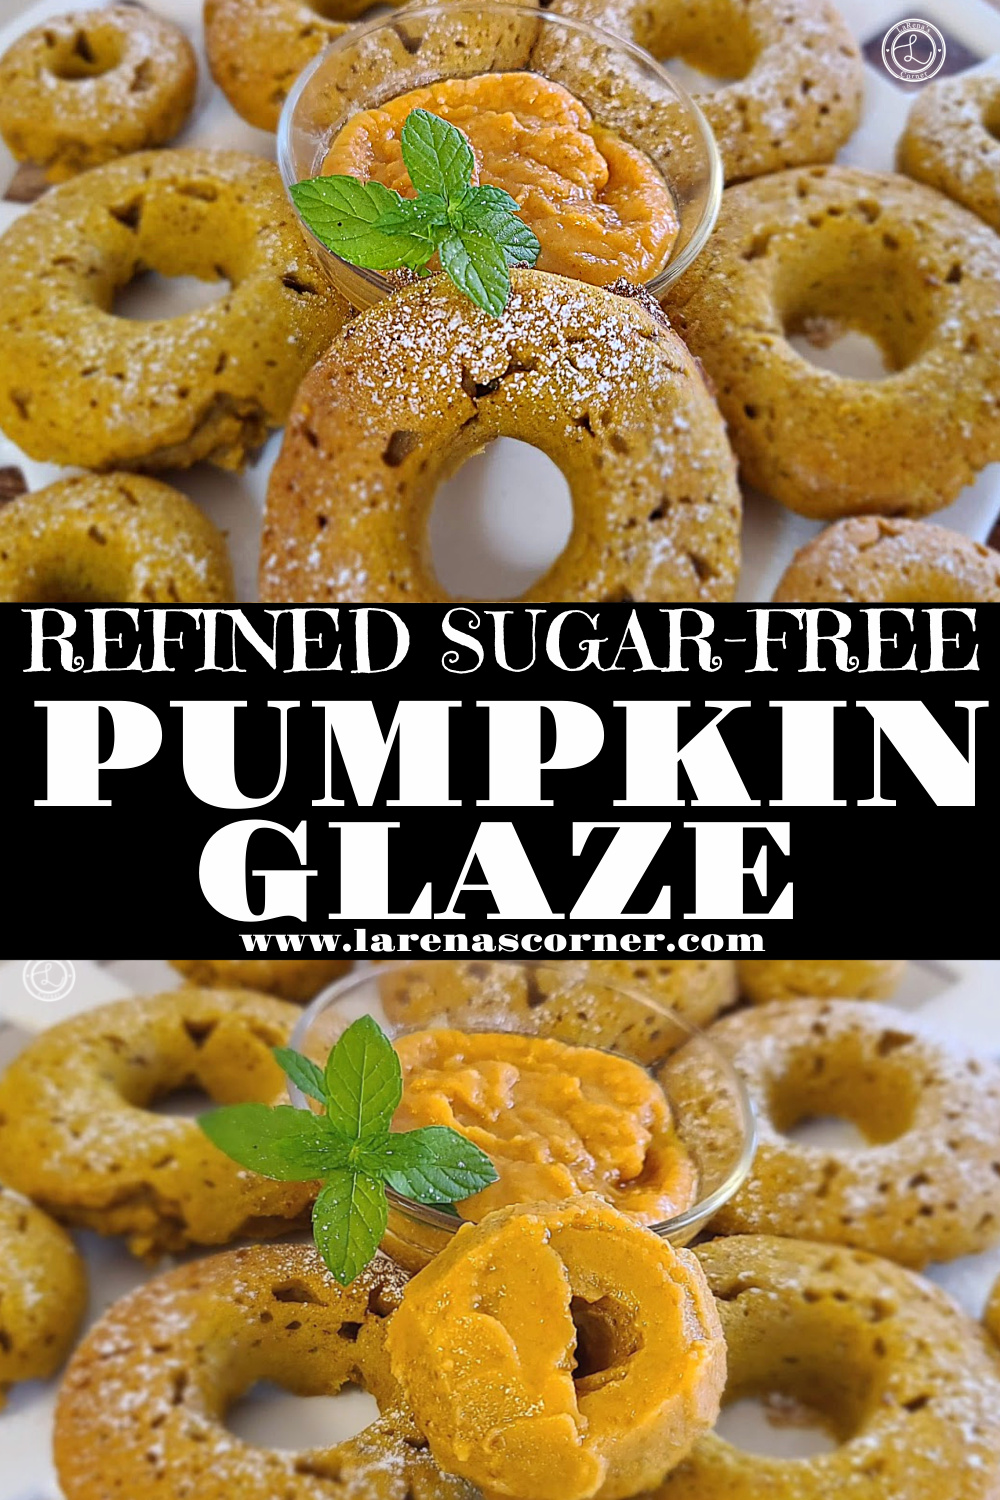 Pumpkin Glaze. One picture of pumpkin donuts on a plate with glaze. One photo of 4 glazed donuts up close.